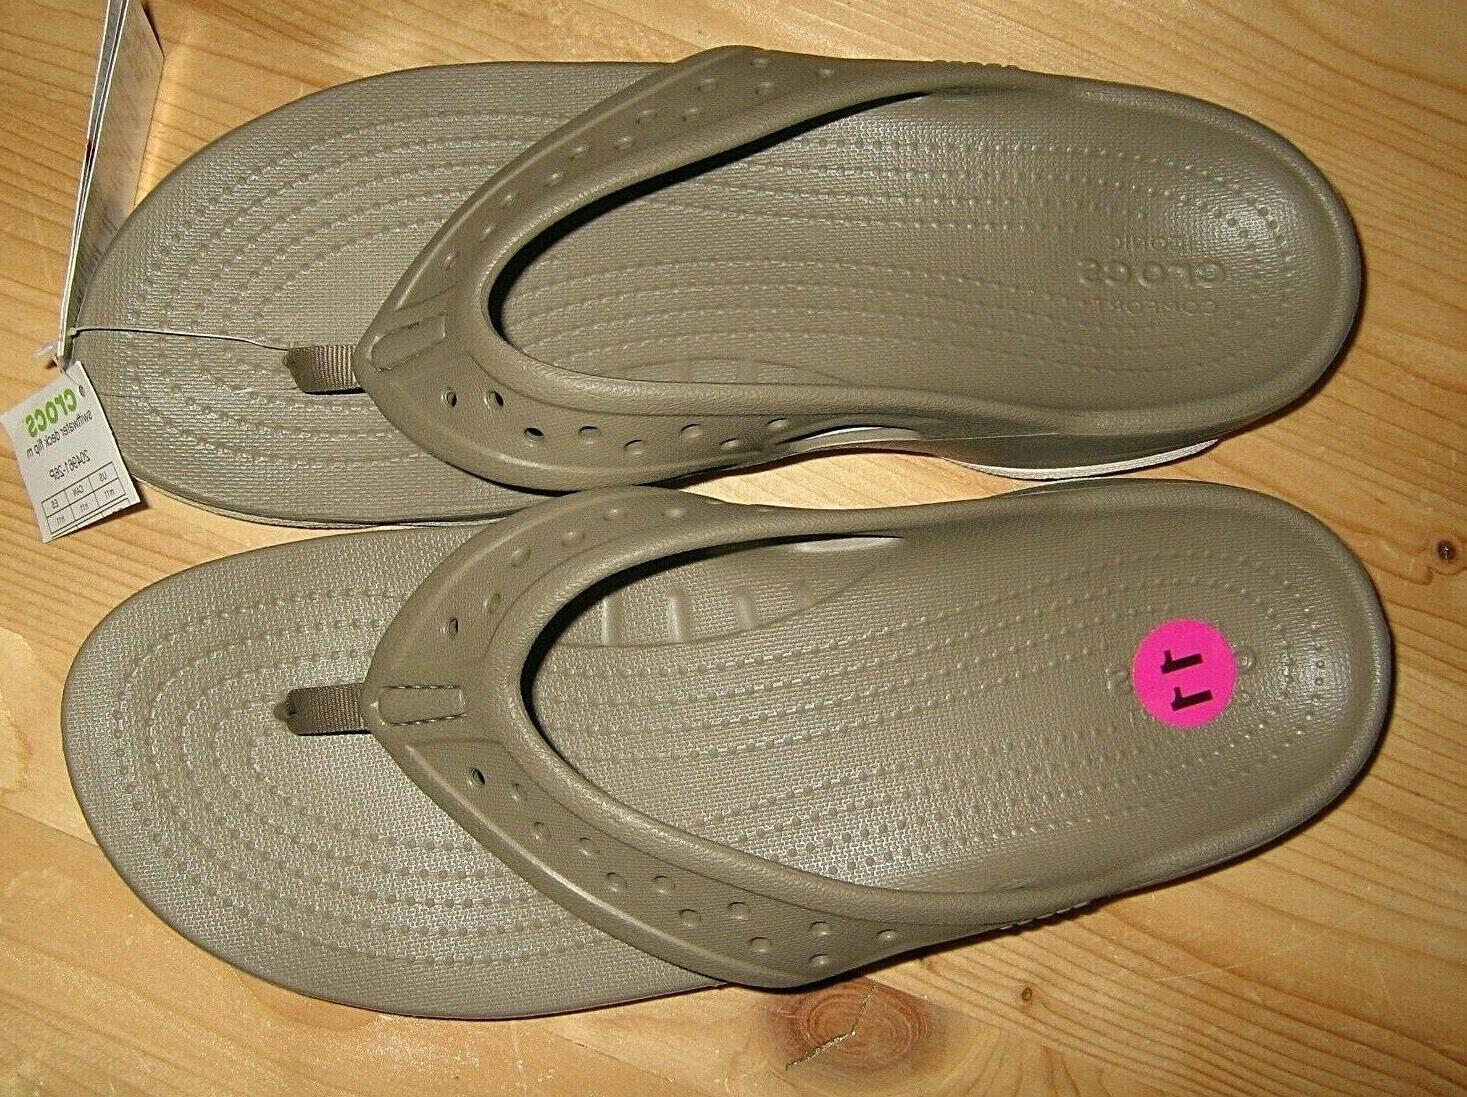 NEW Khaki Crocs Swiftwater Deck Flop Sandals 204961-26P